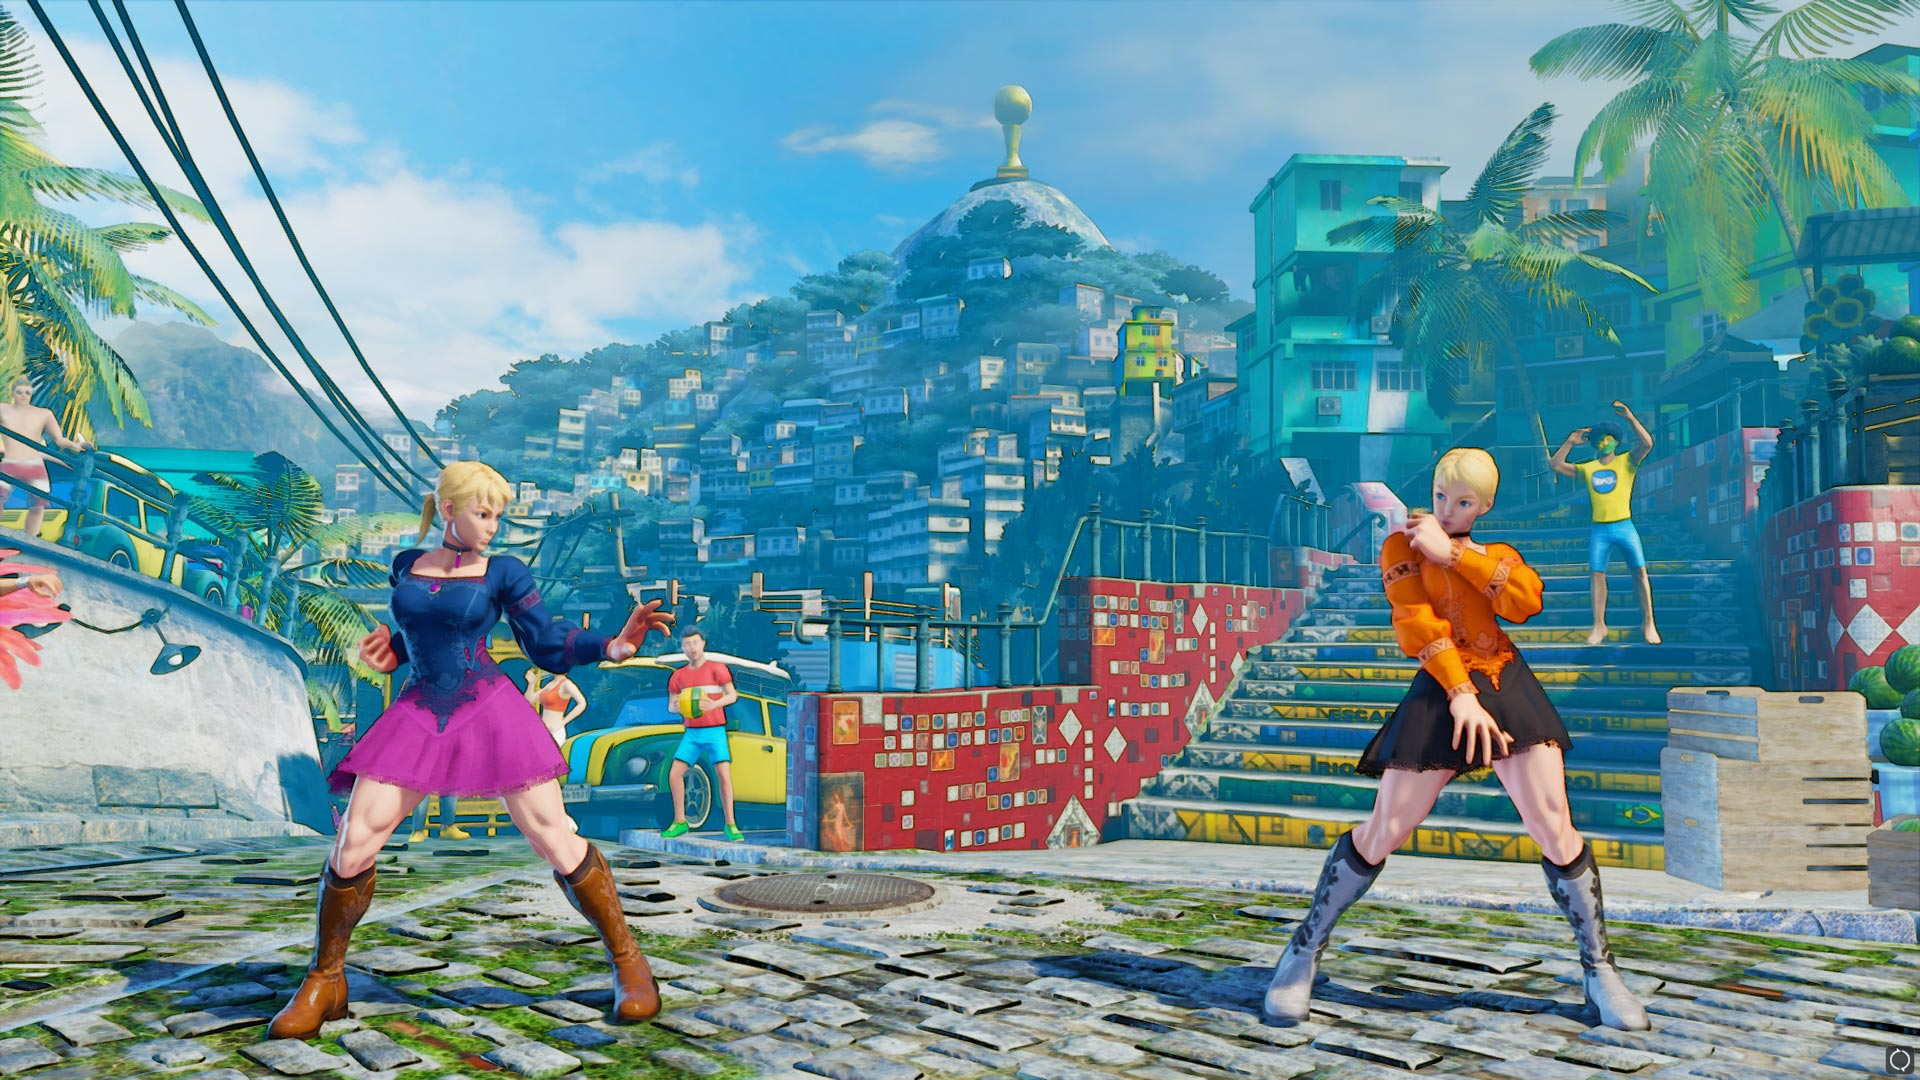 Cammy's Fiona costume colors 2 out of 6 image gallery